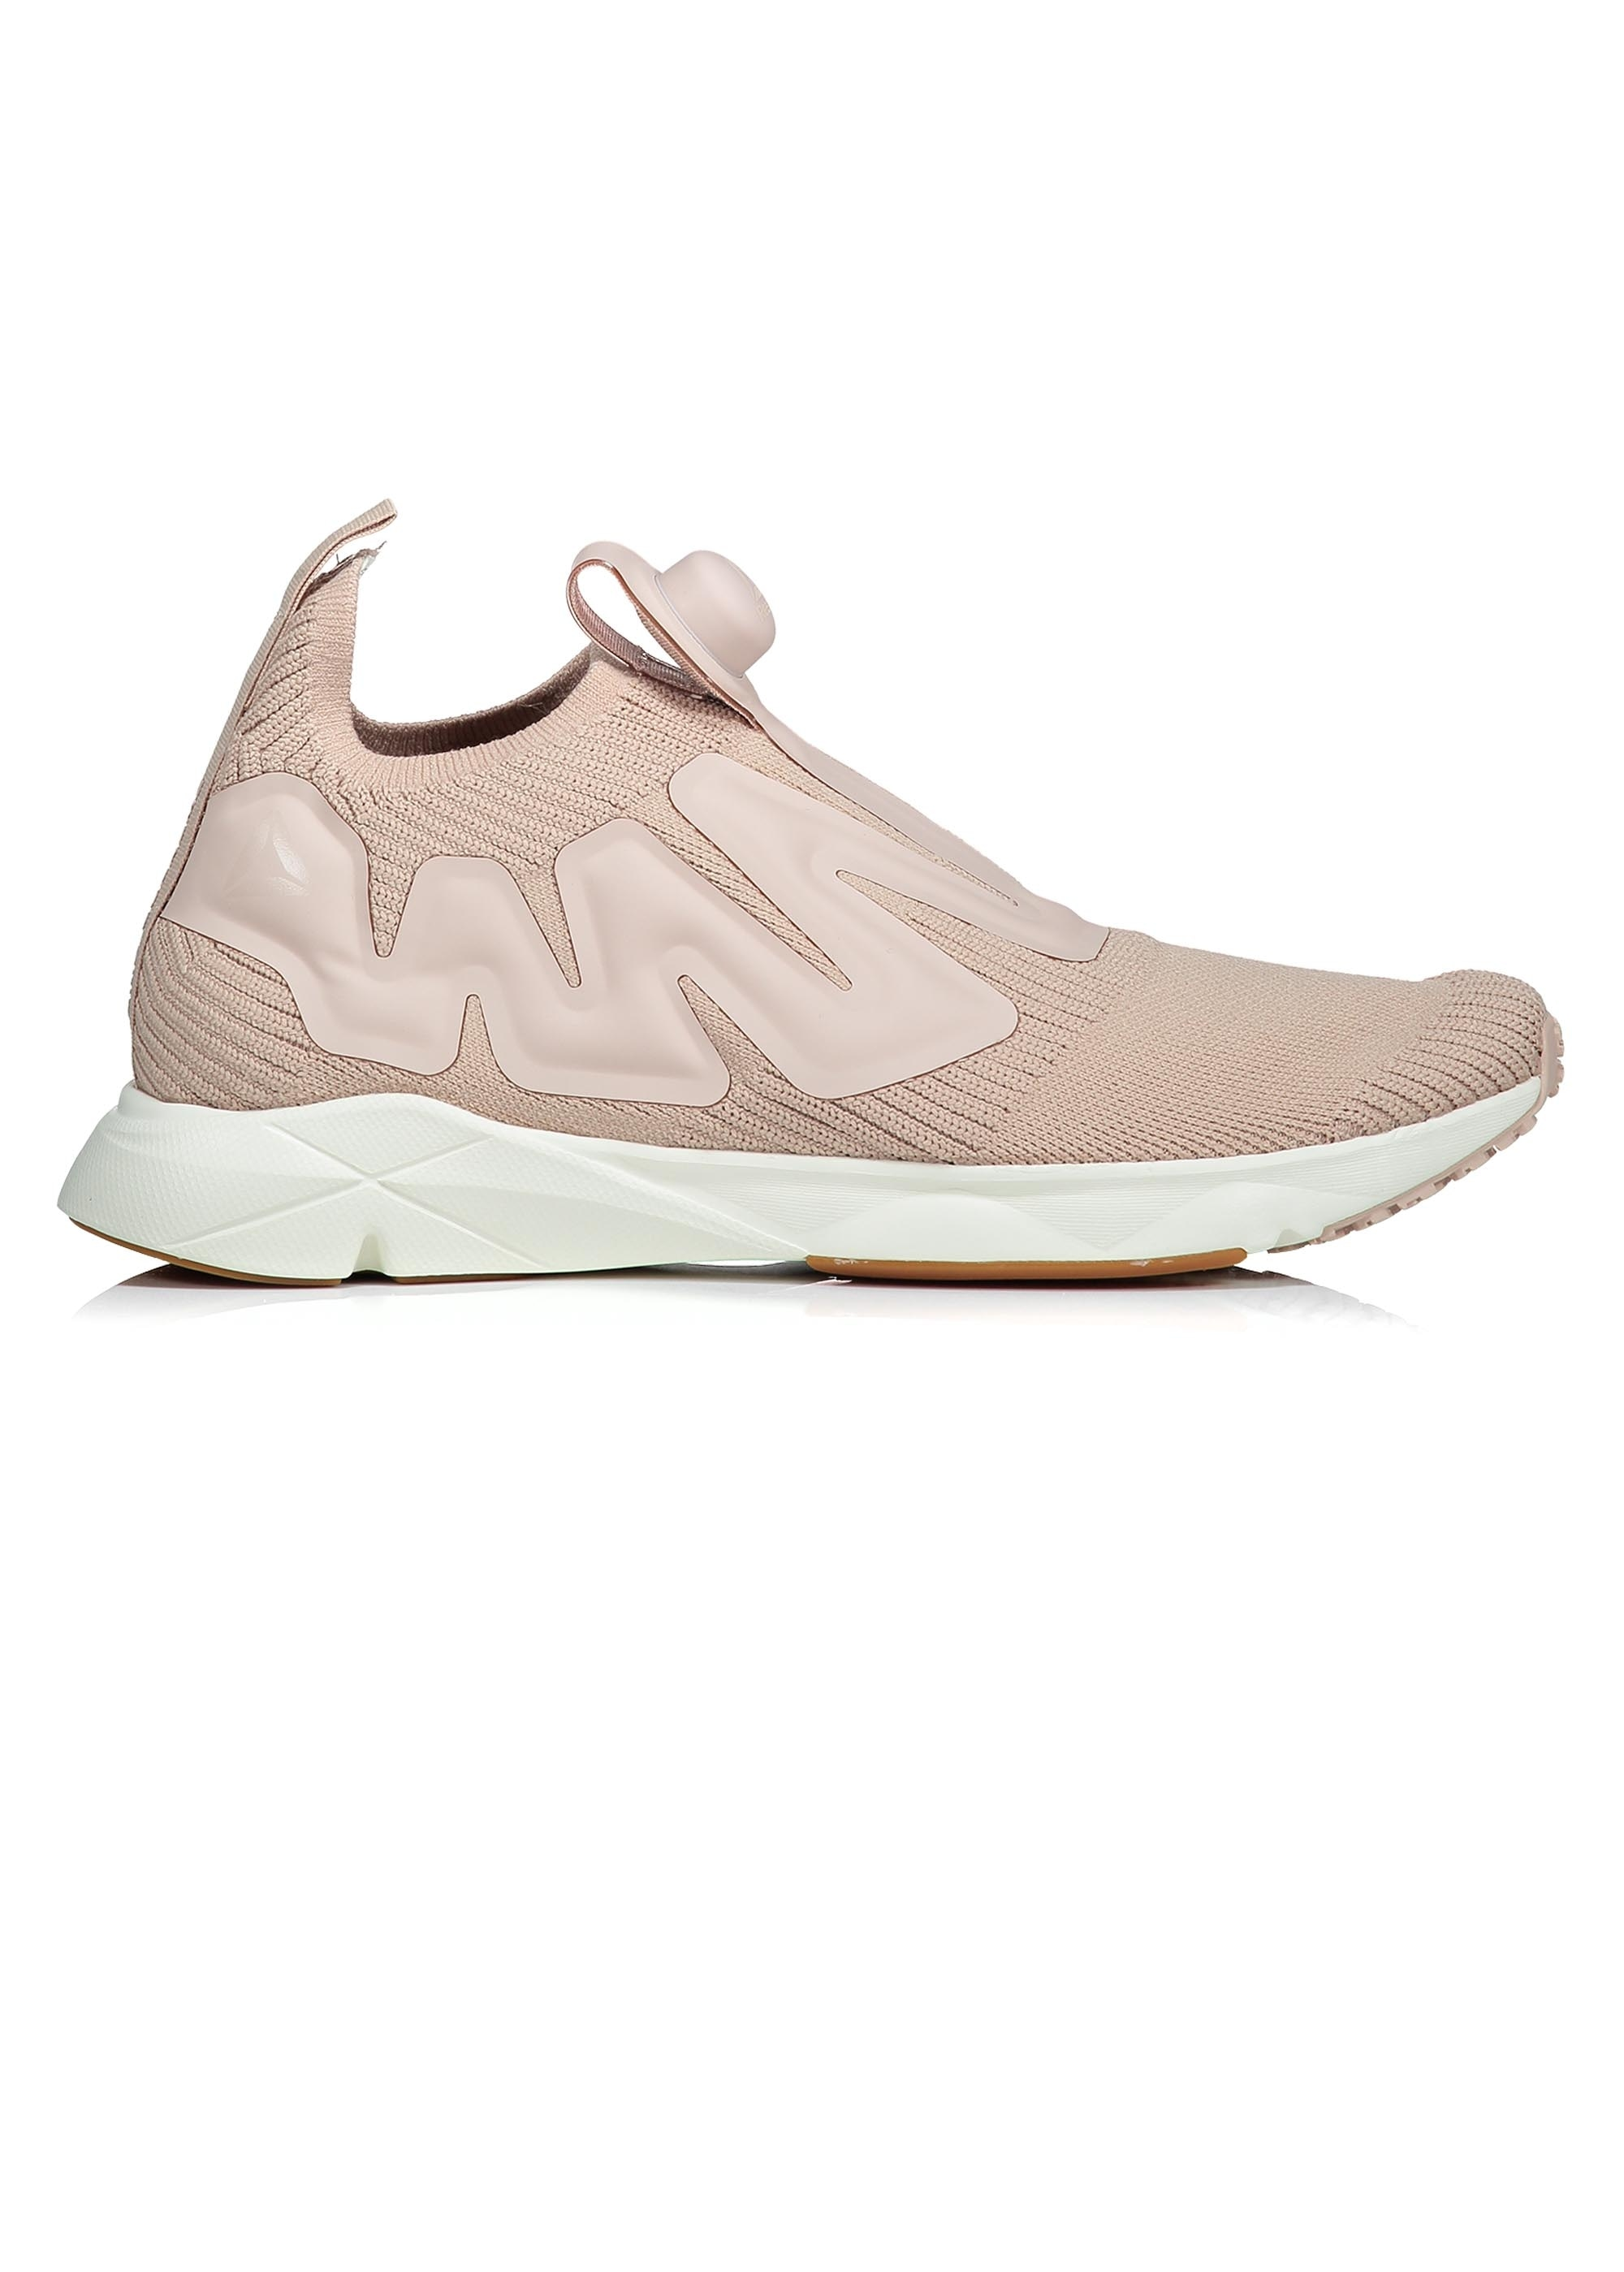 41ba0abd Reebok Pump Supreme Style - Bare Beige - Trainers from Triads UK